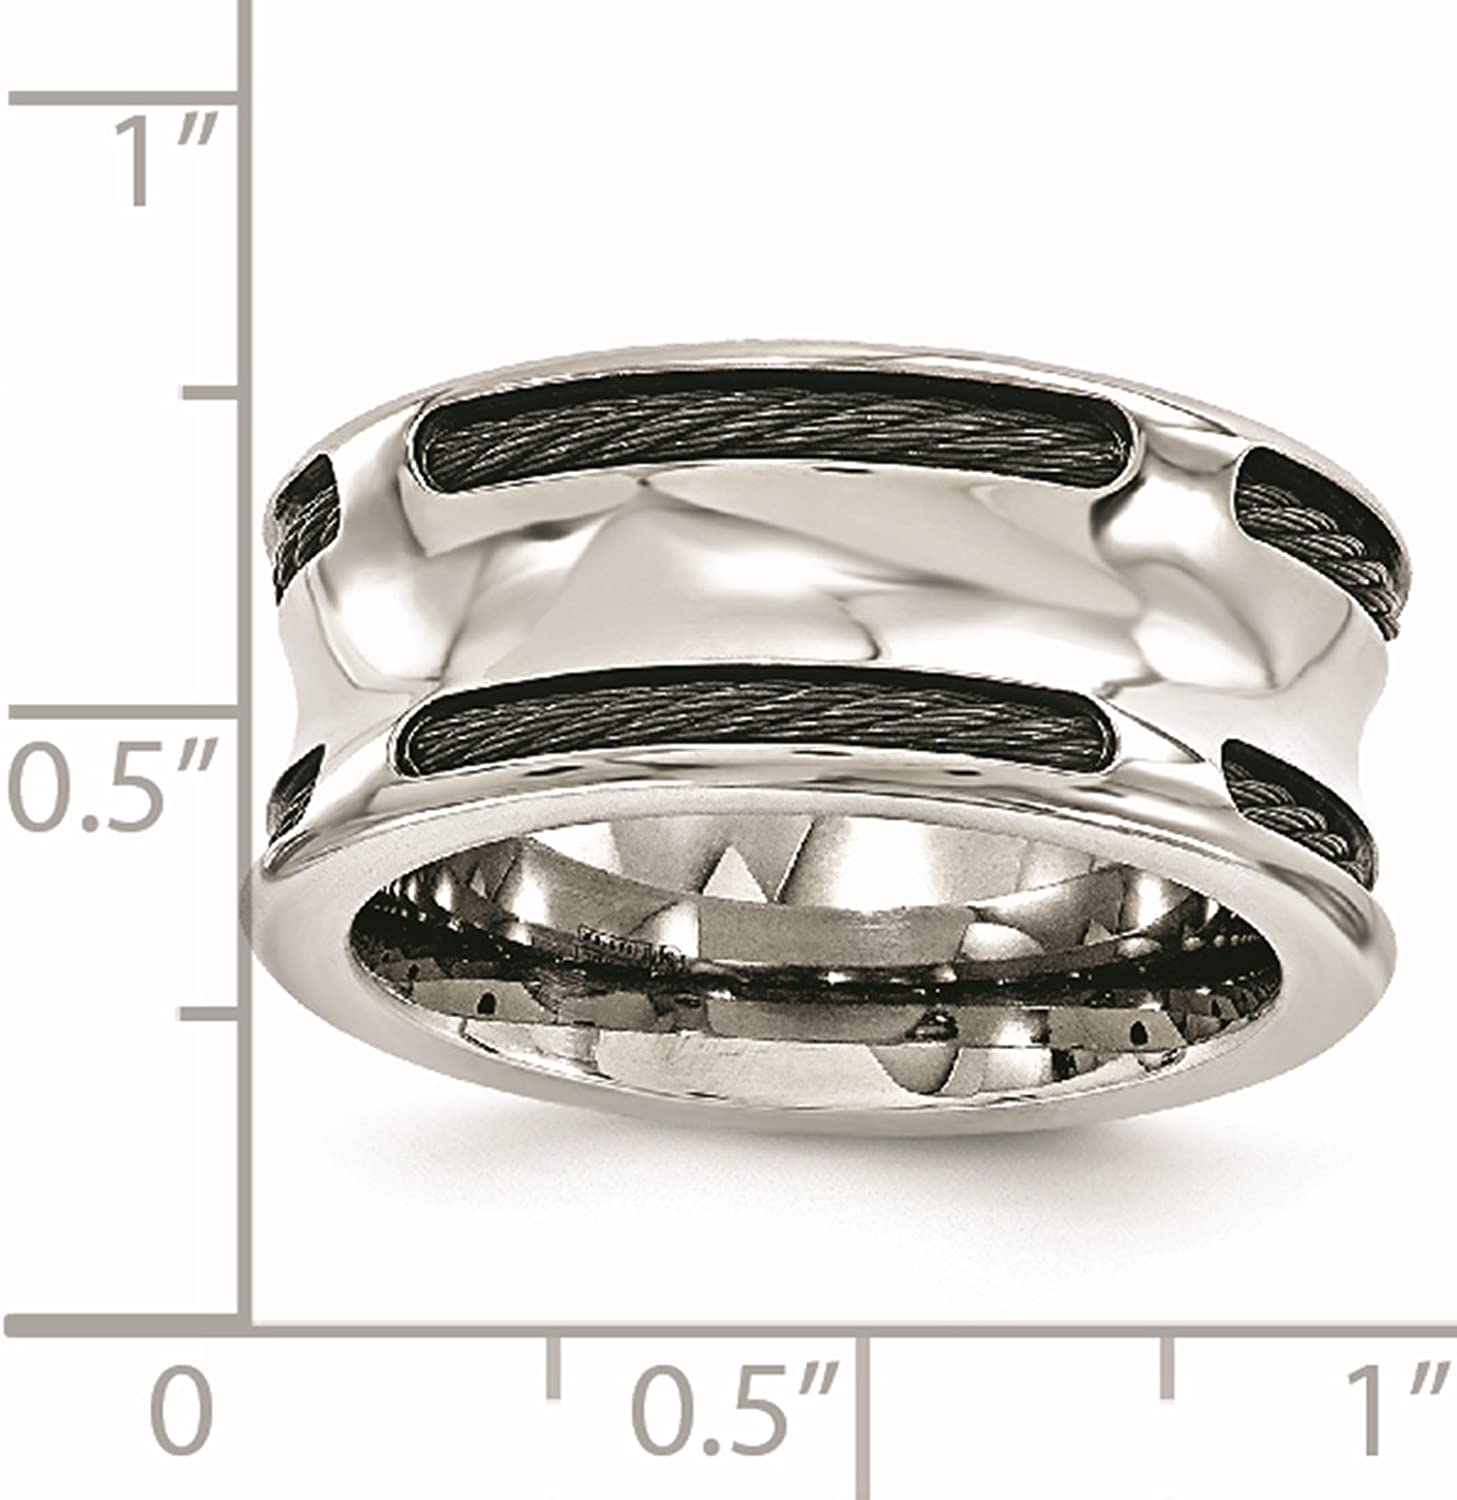 Titanium BlackTi /& Stainless Steel Cable Concave 10mm Wedding Ring Band Size 8-13 by Edward Mirell